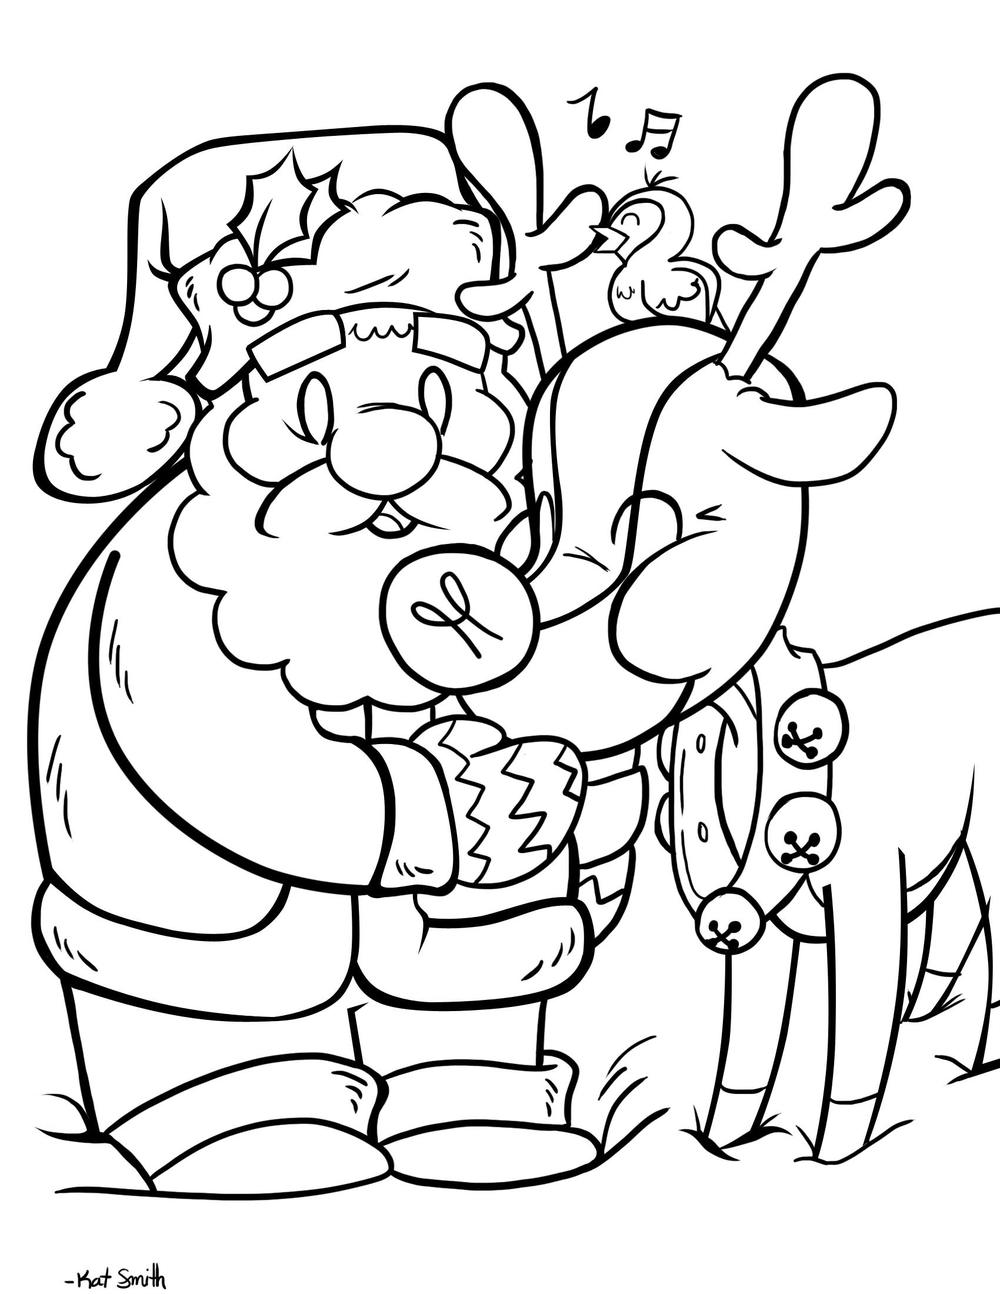 A drawing of Santa Claus by Kat Smith.